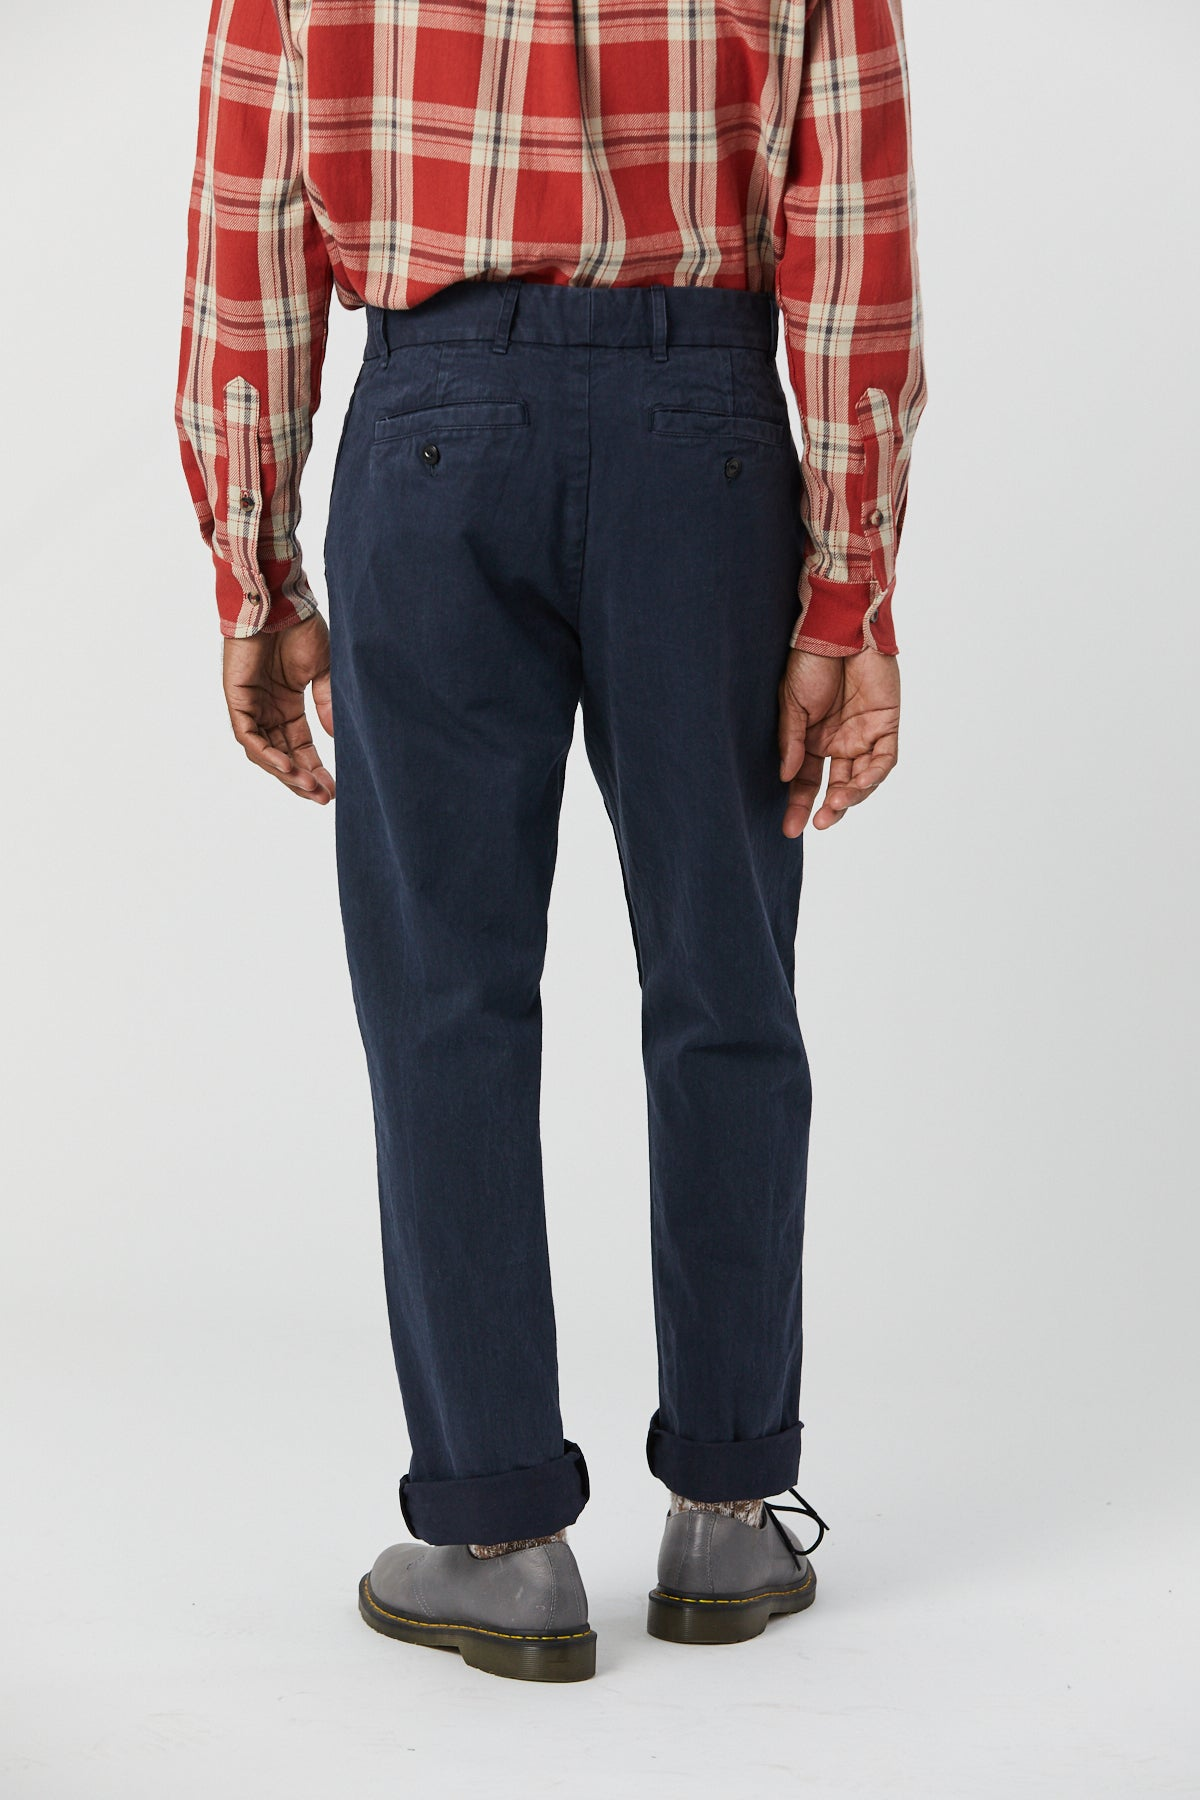 BRIGGS TROUSER IN NAVY - Fortune Goods